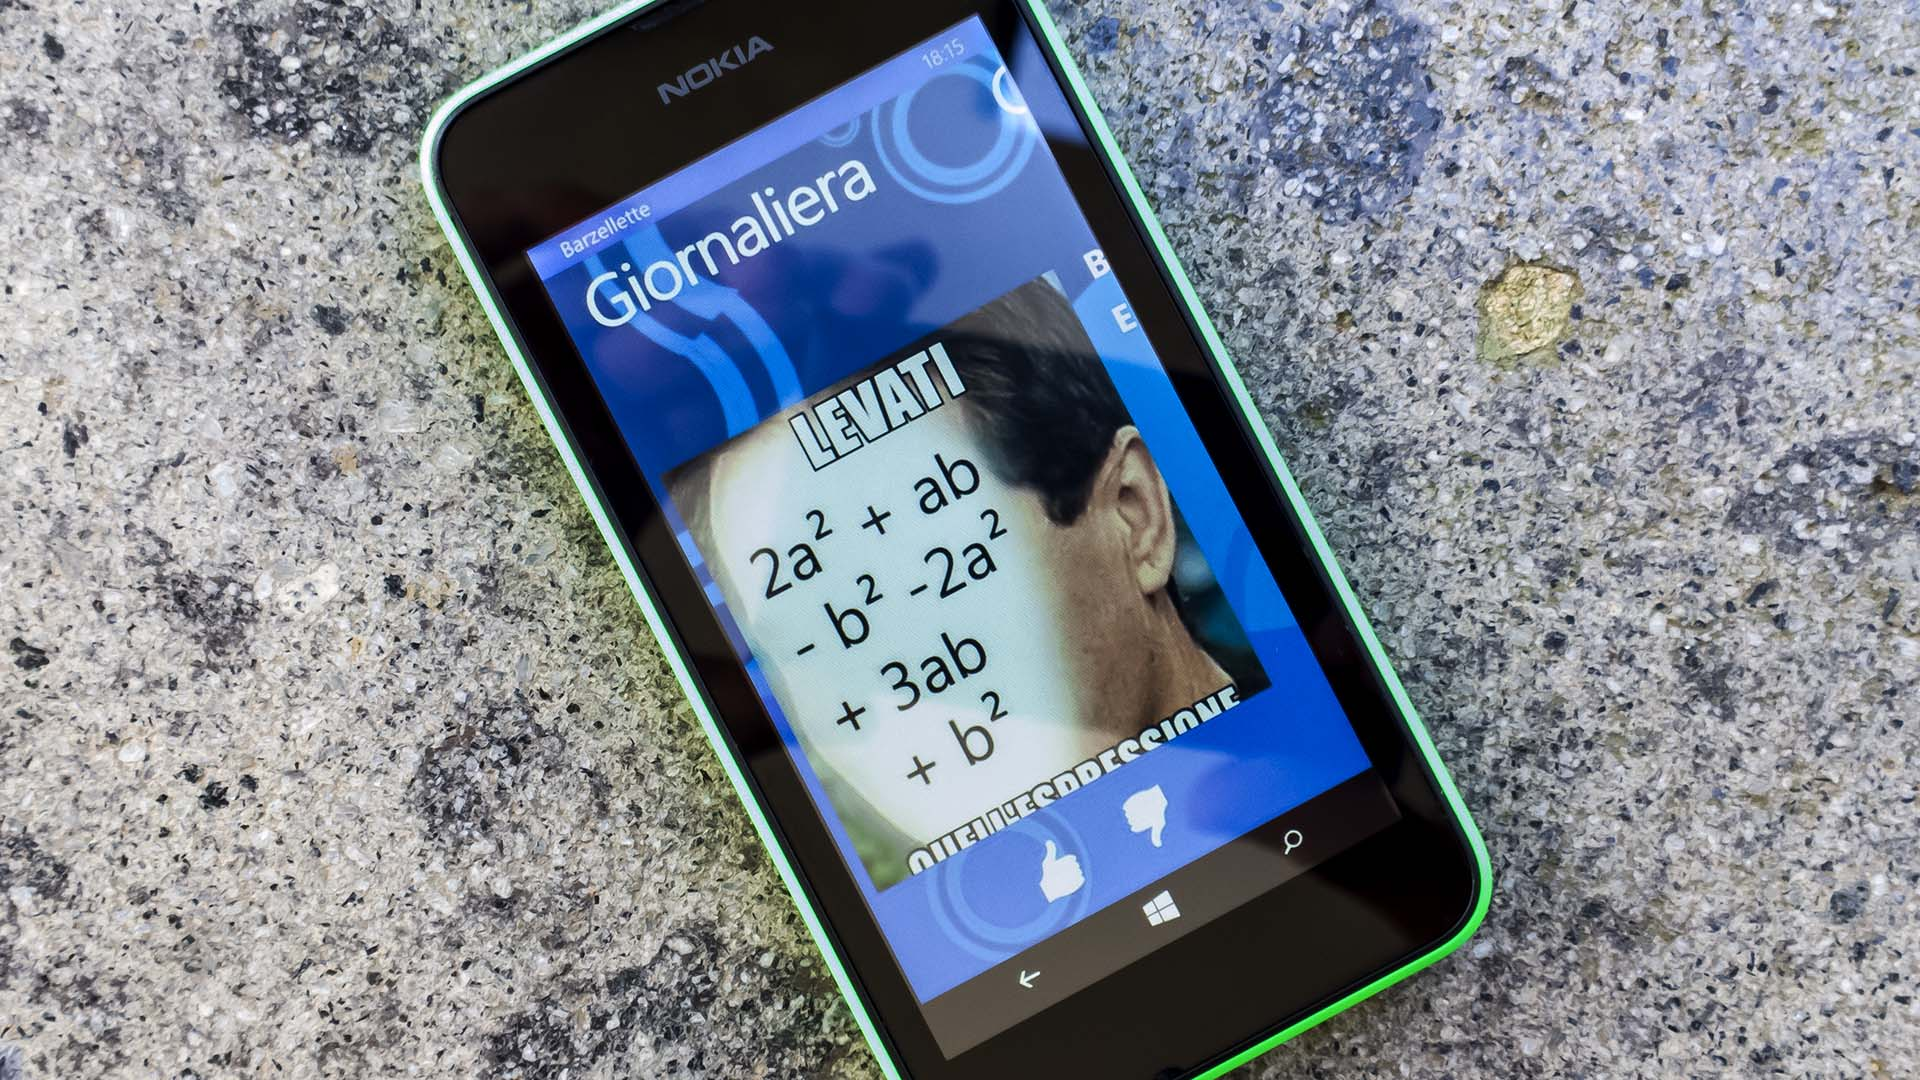 Barzellette Windows Phone